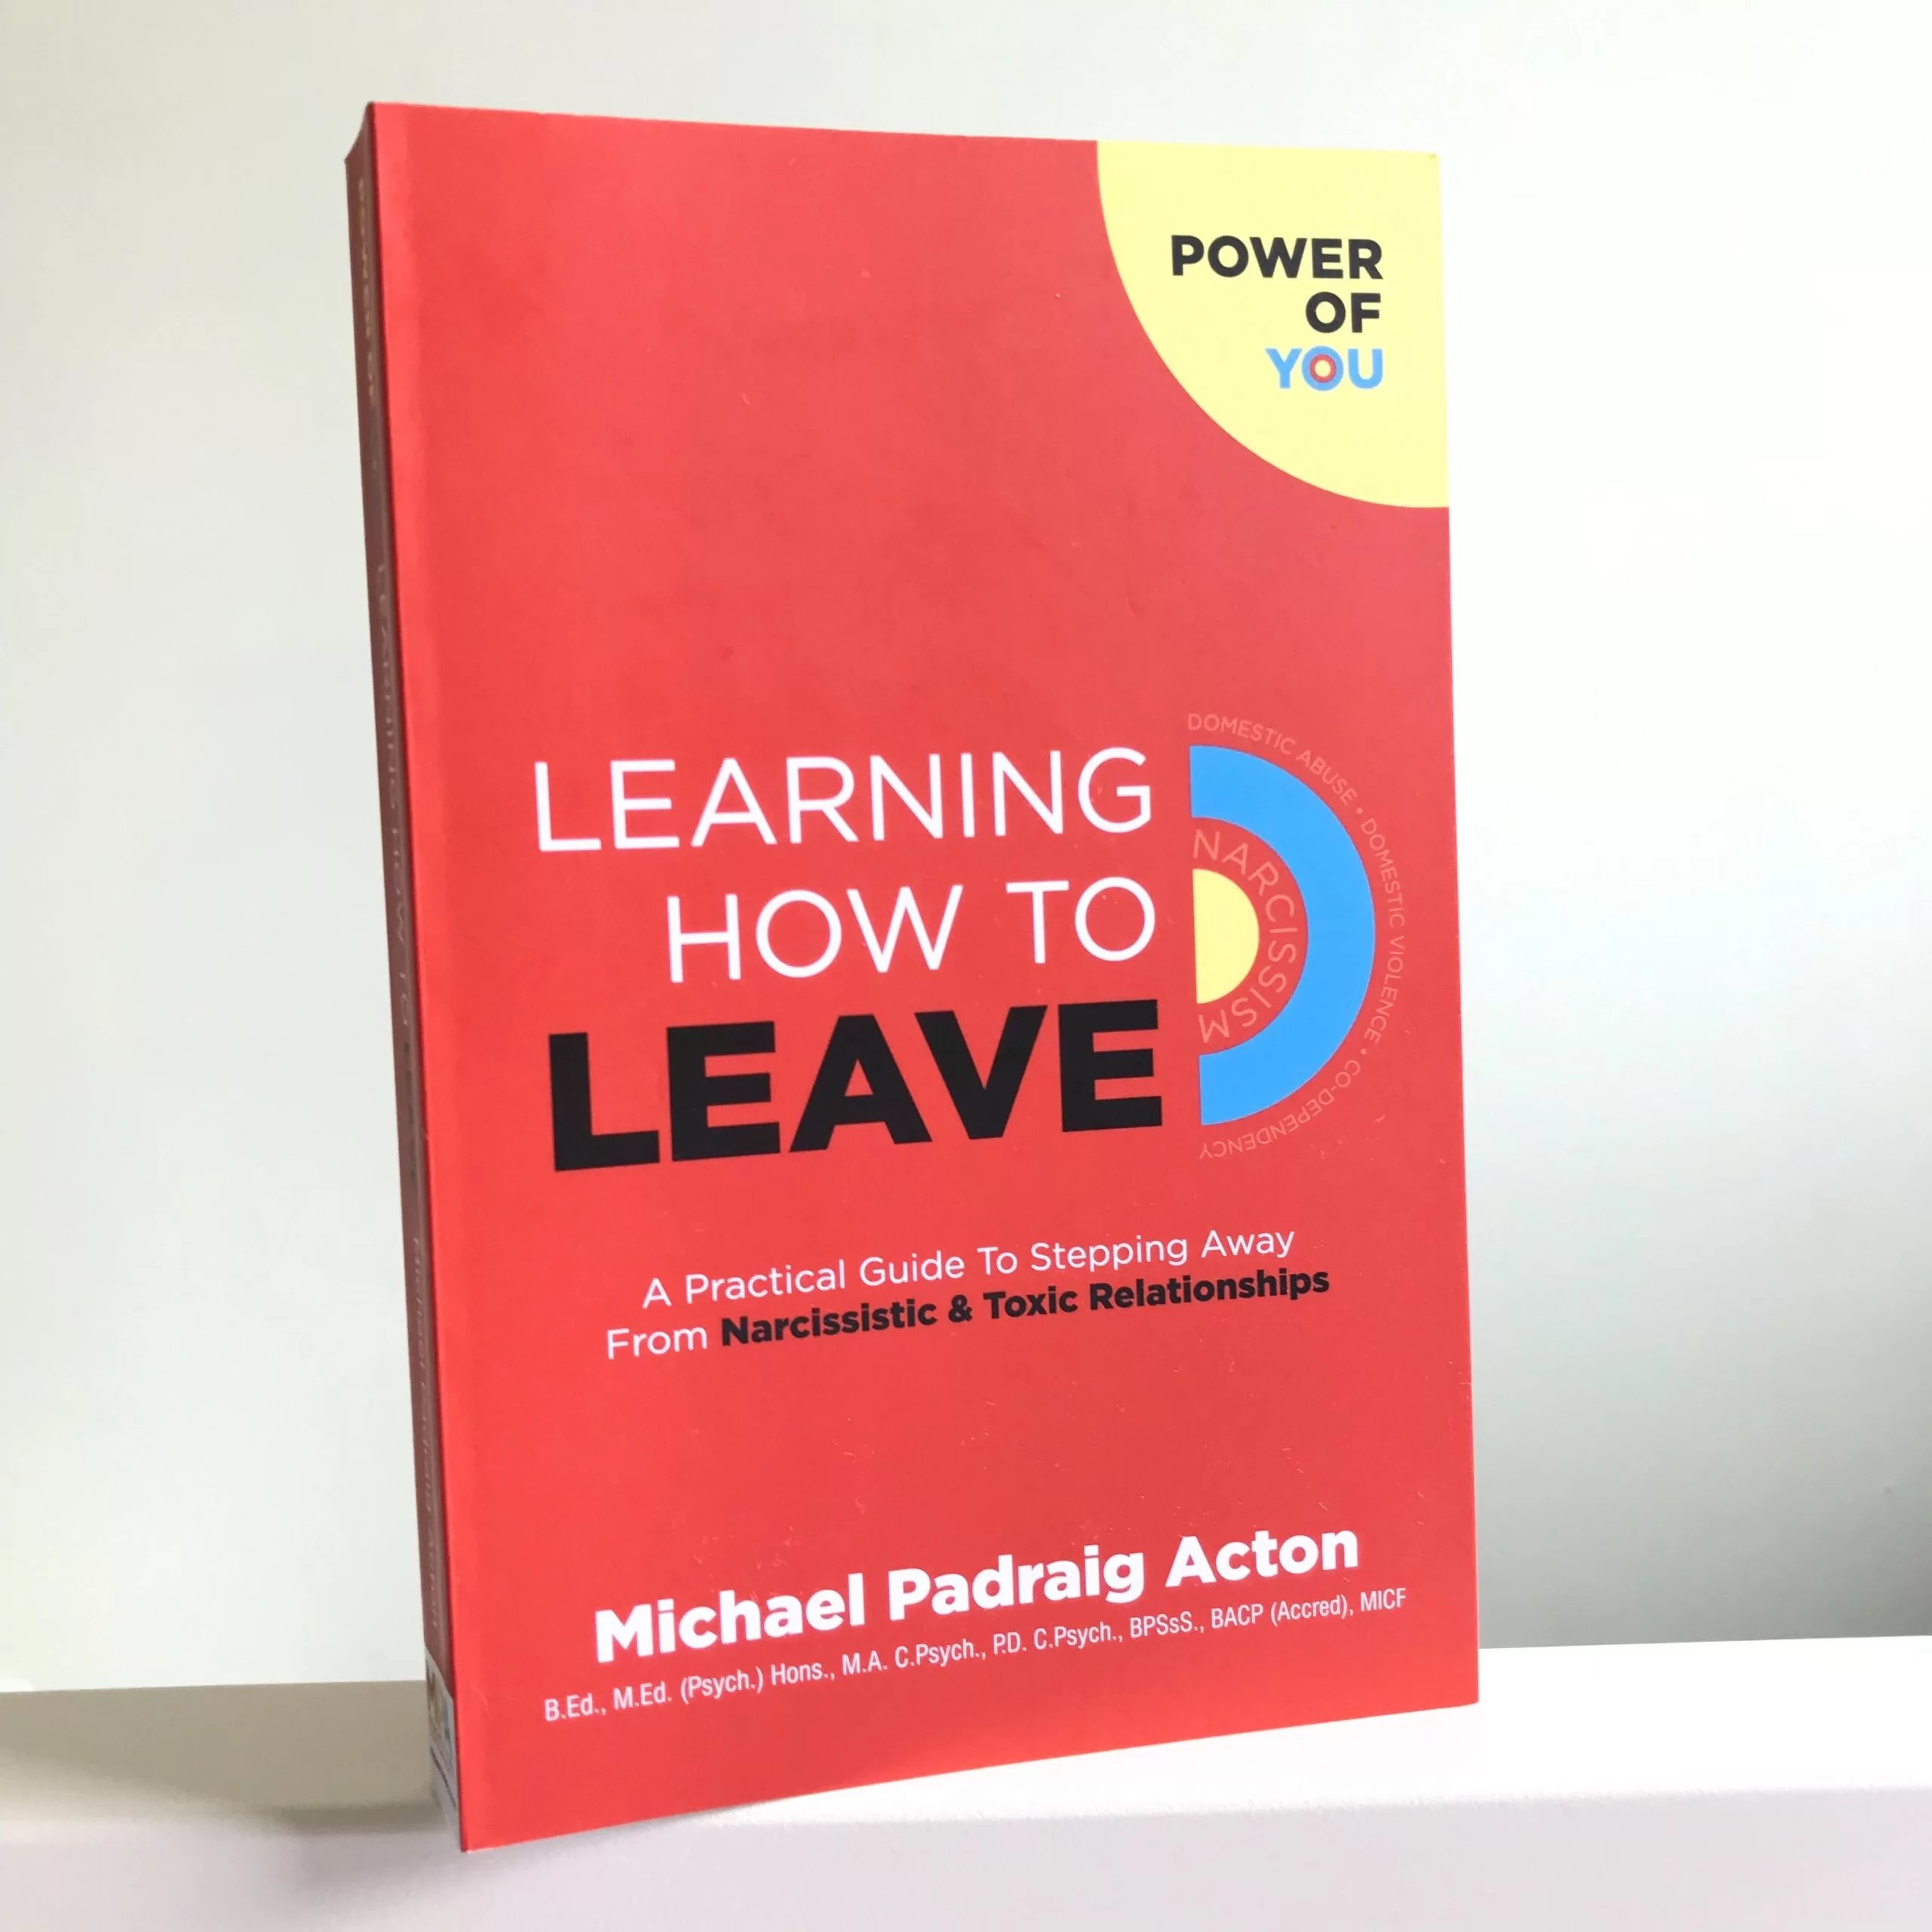 Learning How to Leave by Michael Padraig Acton